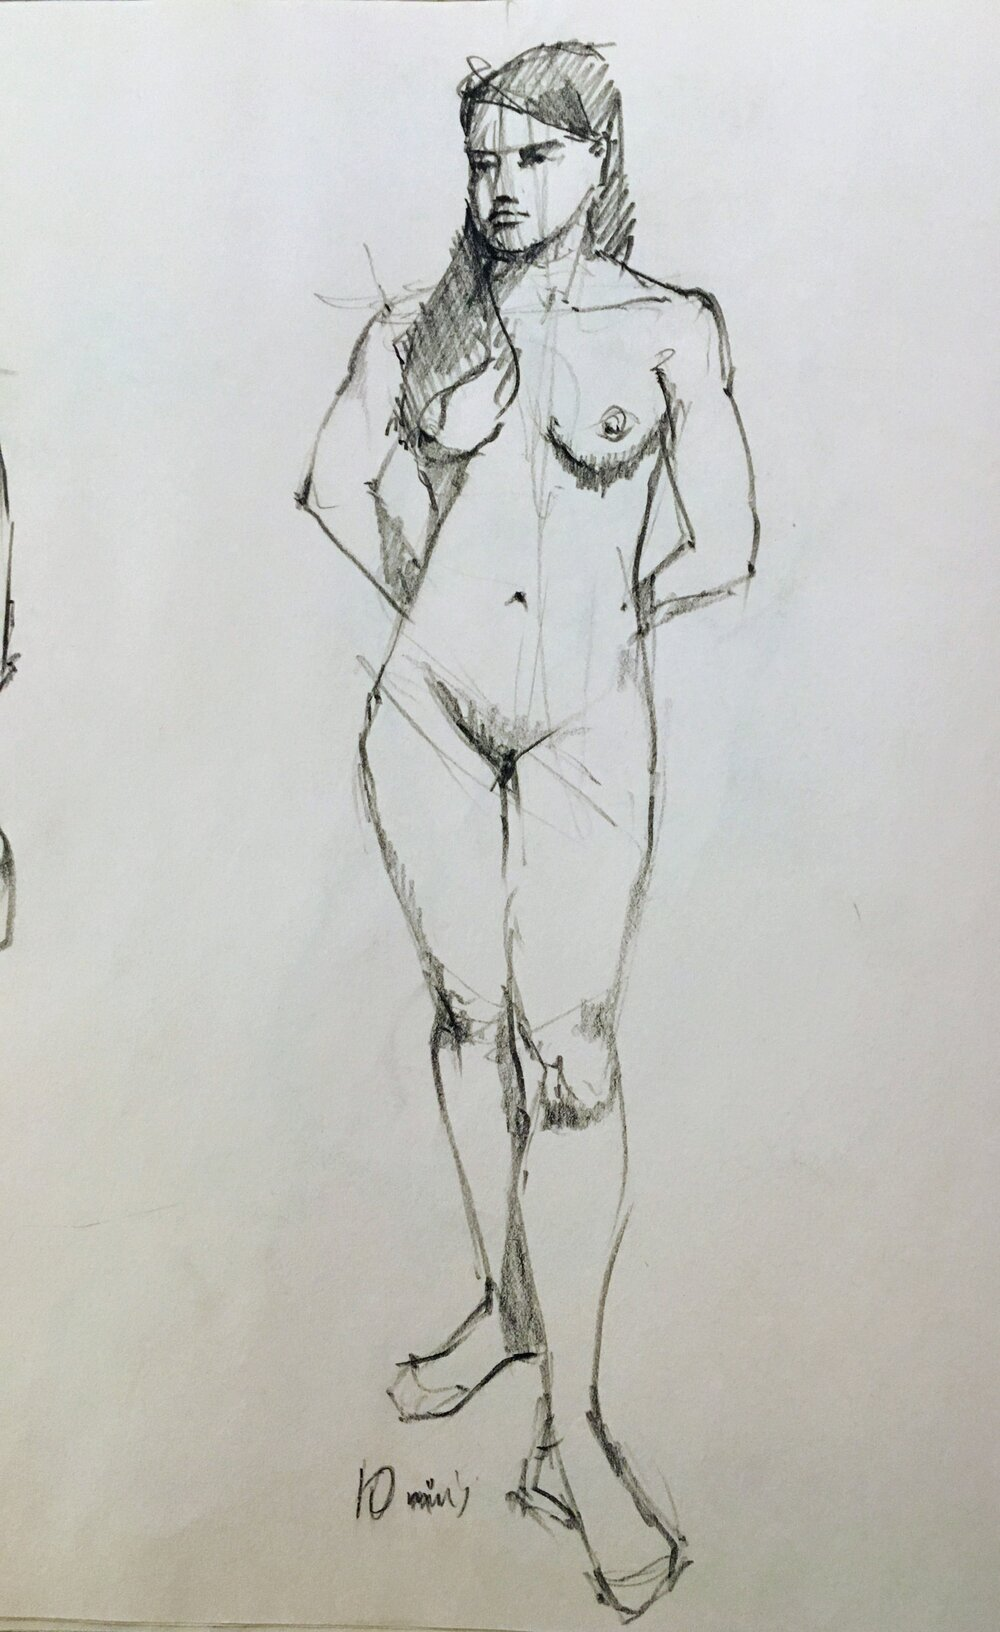 Life drawing. Michele Clamp. Conte pencil on newsprint